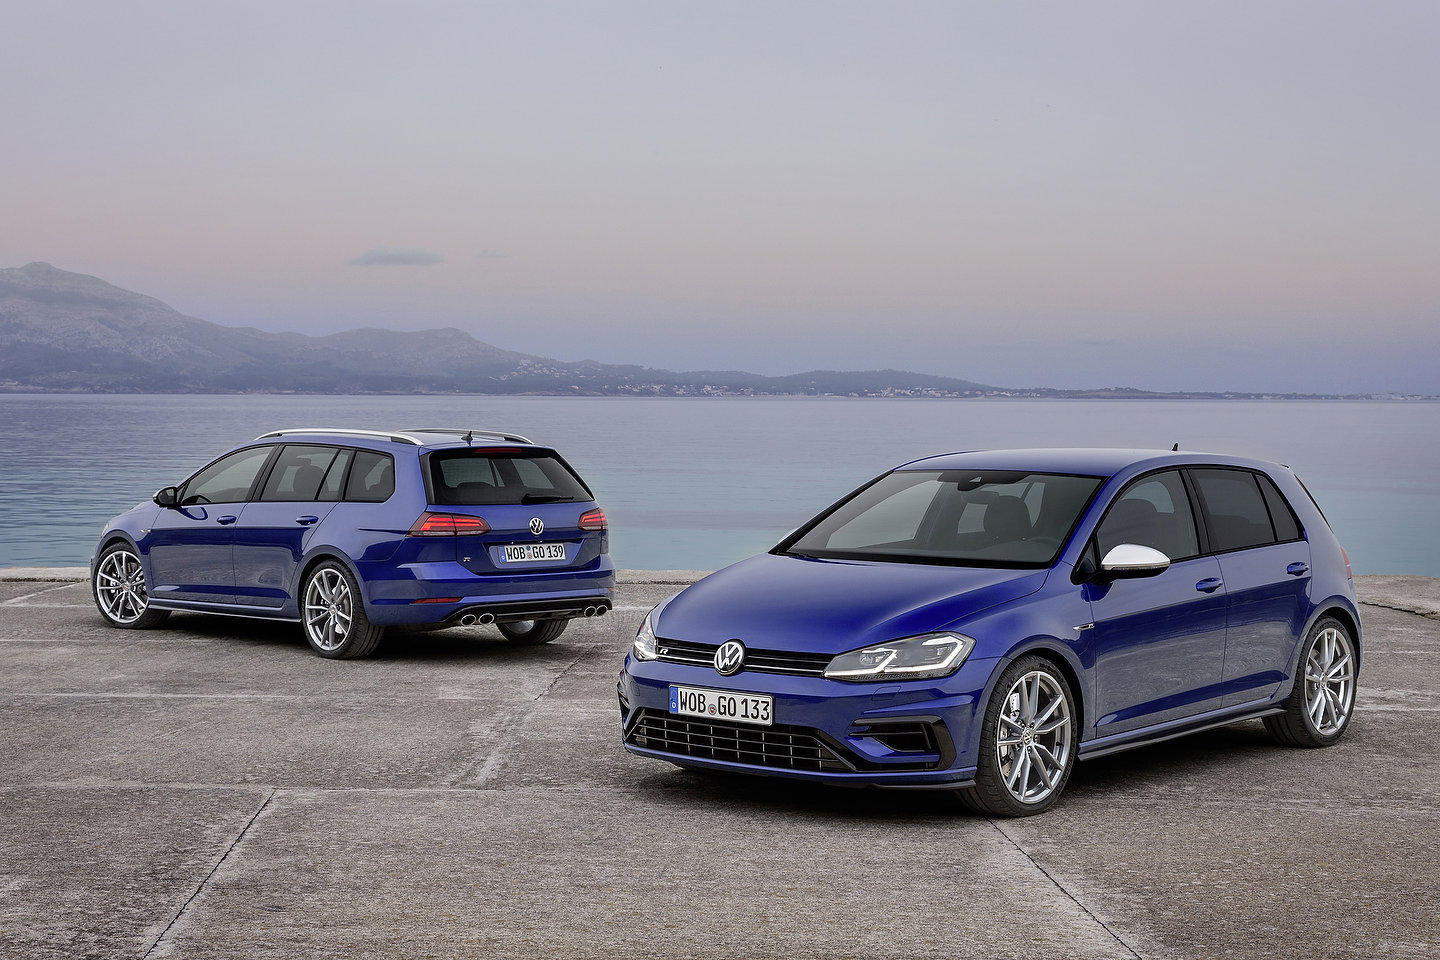 2019 Volkswagen Golf R and Golf R Variant